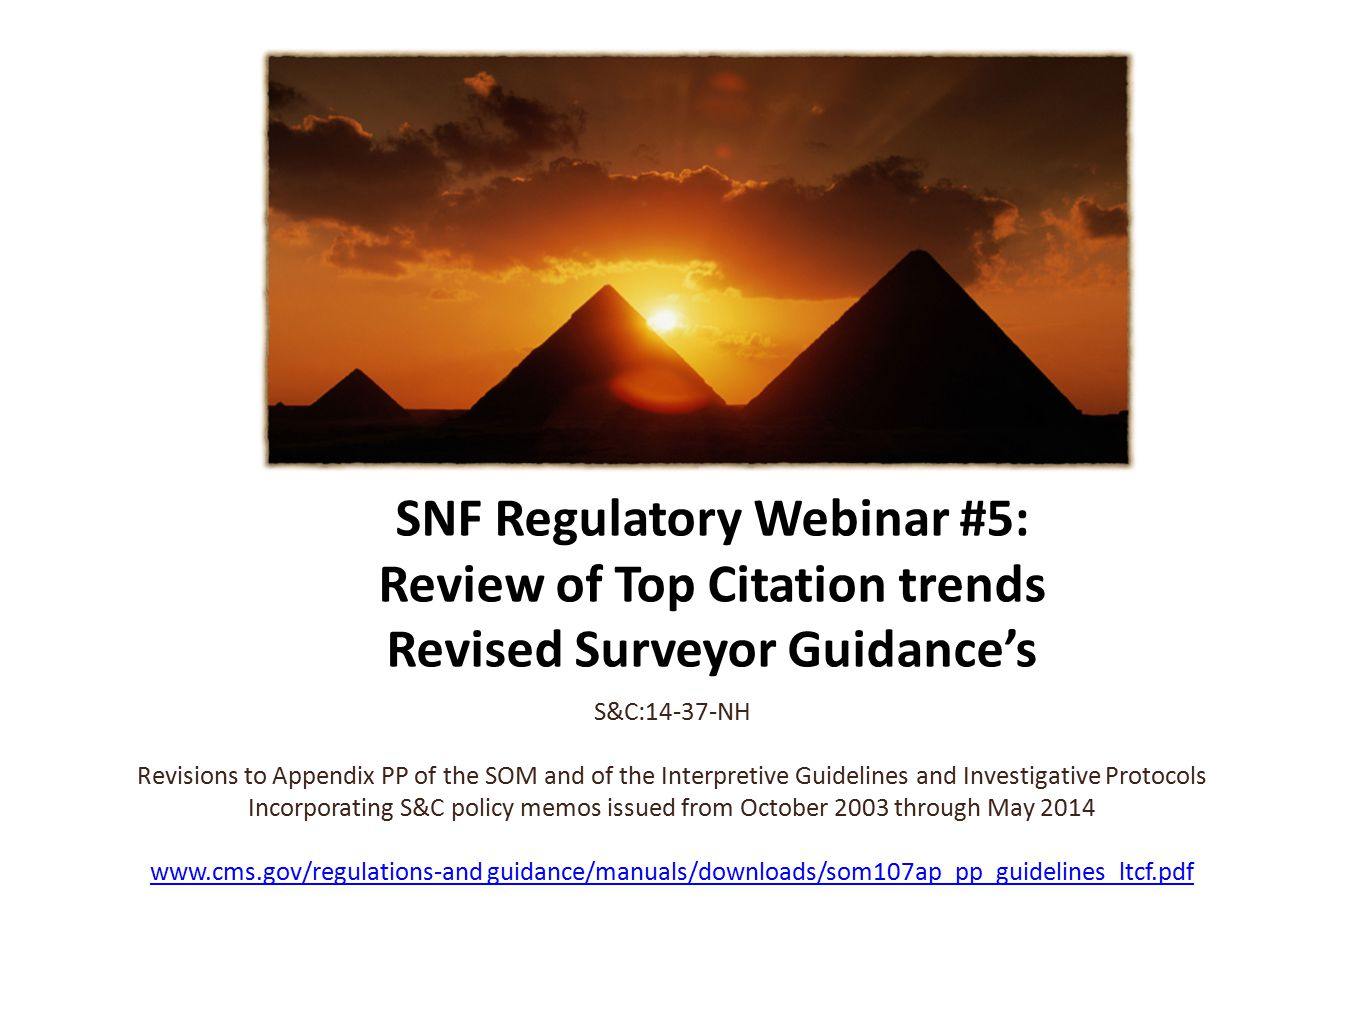 Revisions to the Interpretive Guidelines and where appropriate, Investigative Protocols for 20 F-Tags will be provided during this presentation.